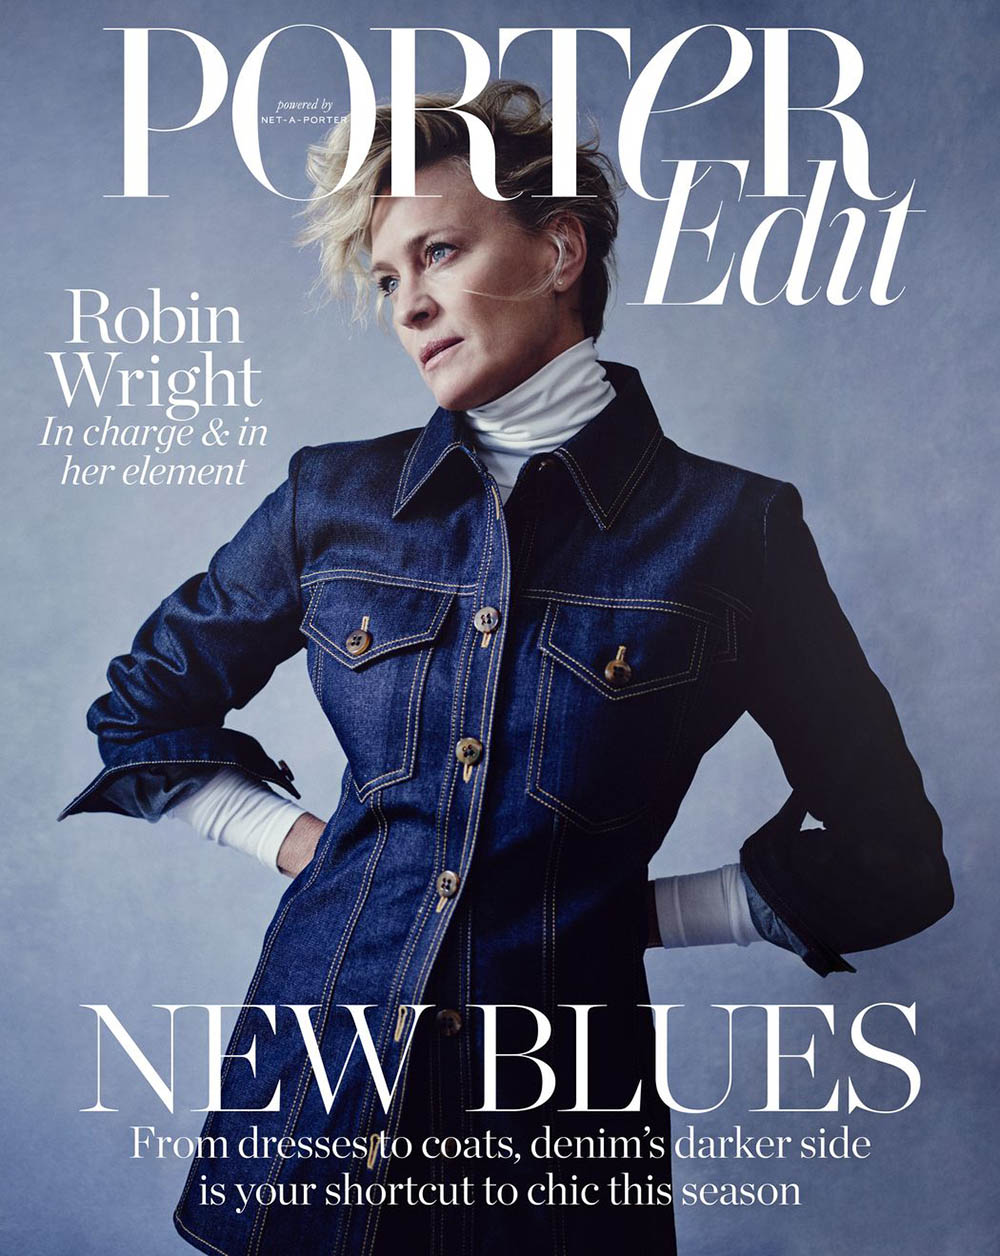 Robin Wright covers Porter Edit August 31st, 2018 by Boo George